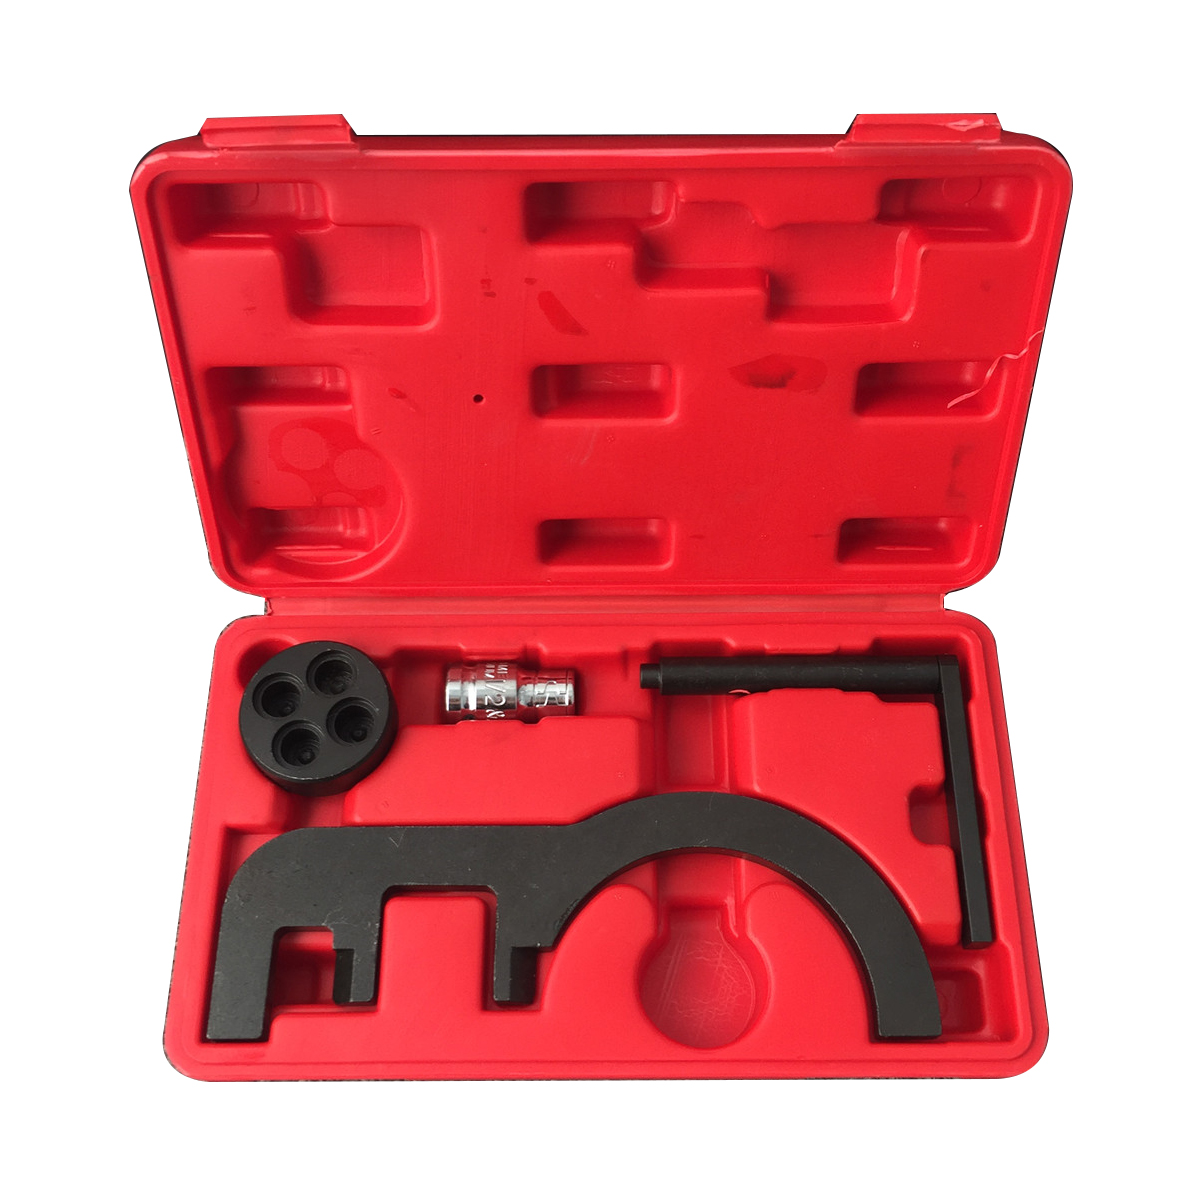 Engine Timing Tool For BMW X1 X5 X6 N47 N47S N57 D20A D20B D20T0 D30U0 D30T0